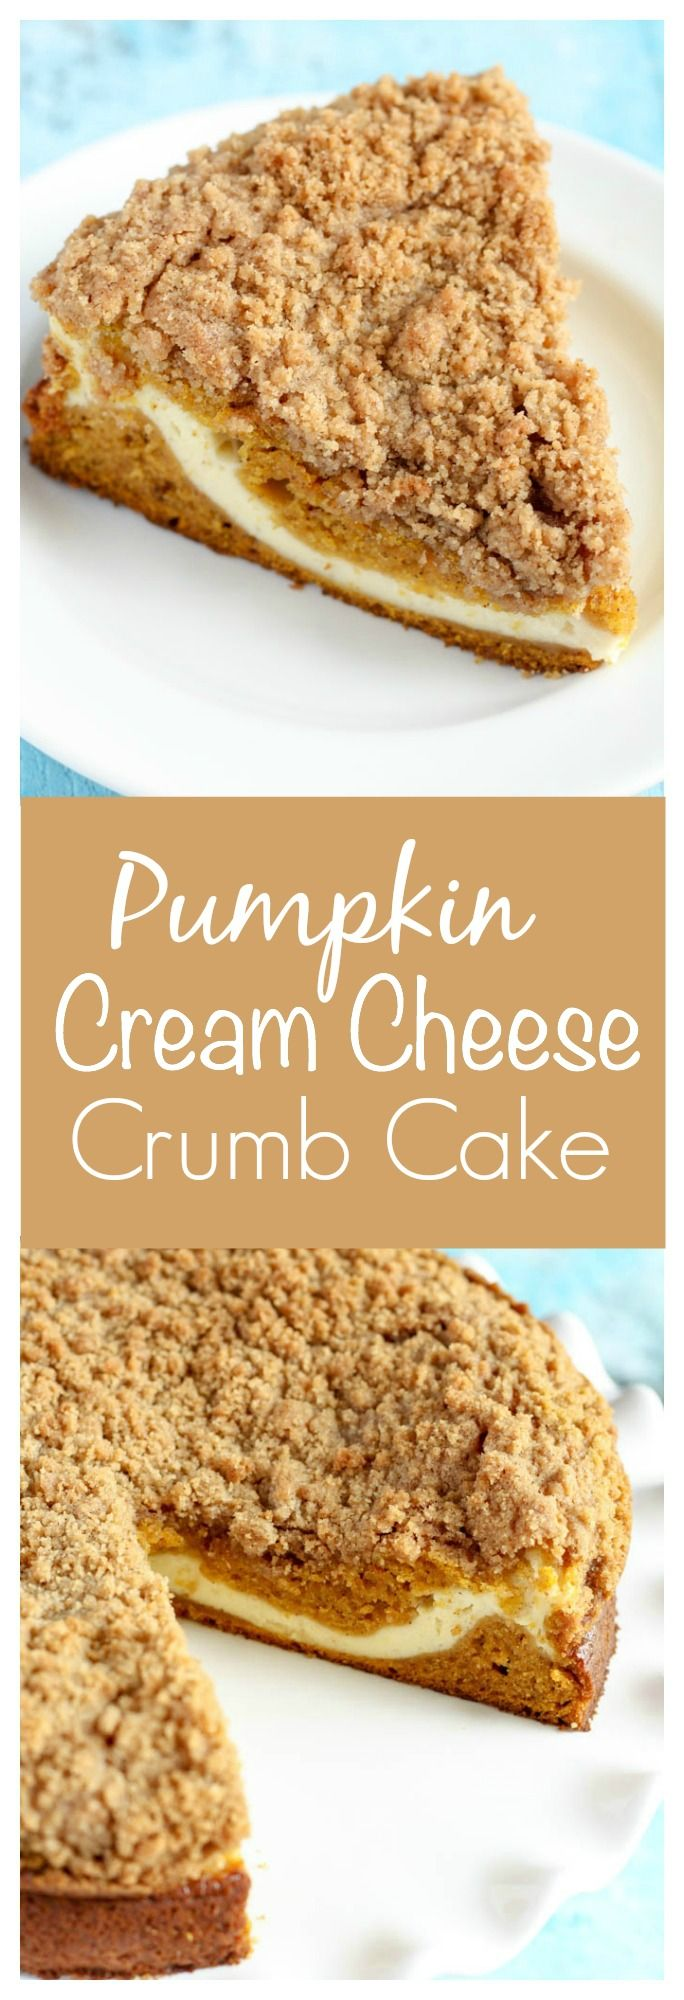 Pumpkin crumb cake with a cream cheese filling in the center. This Pumpkin Cream Cheese Crumb Cake is perfect for breakfast or dessert!